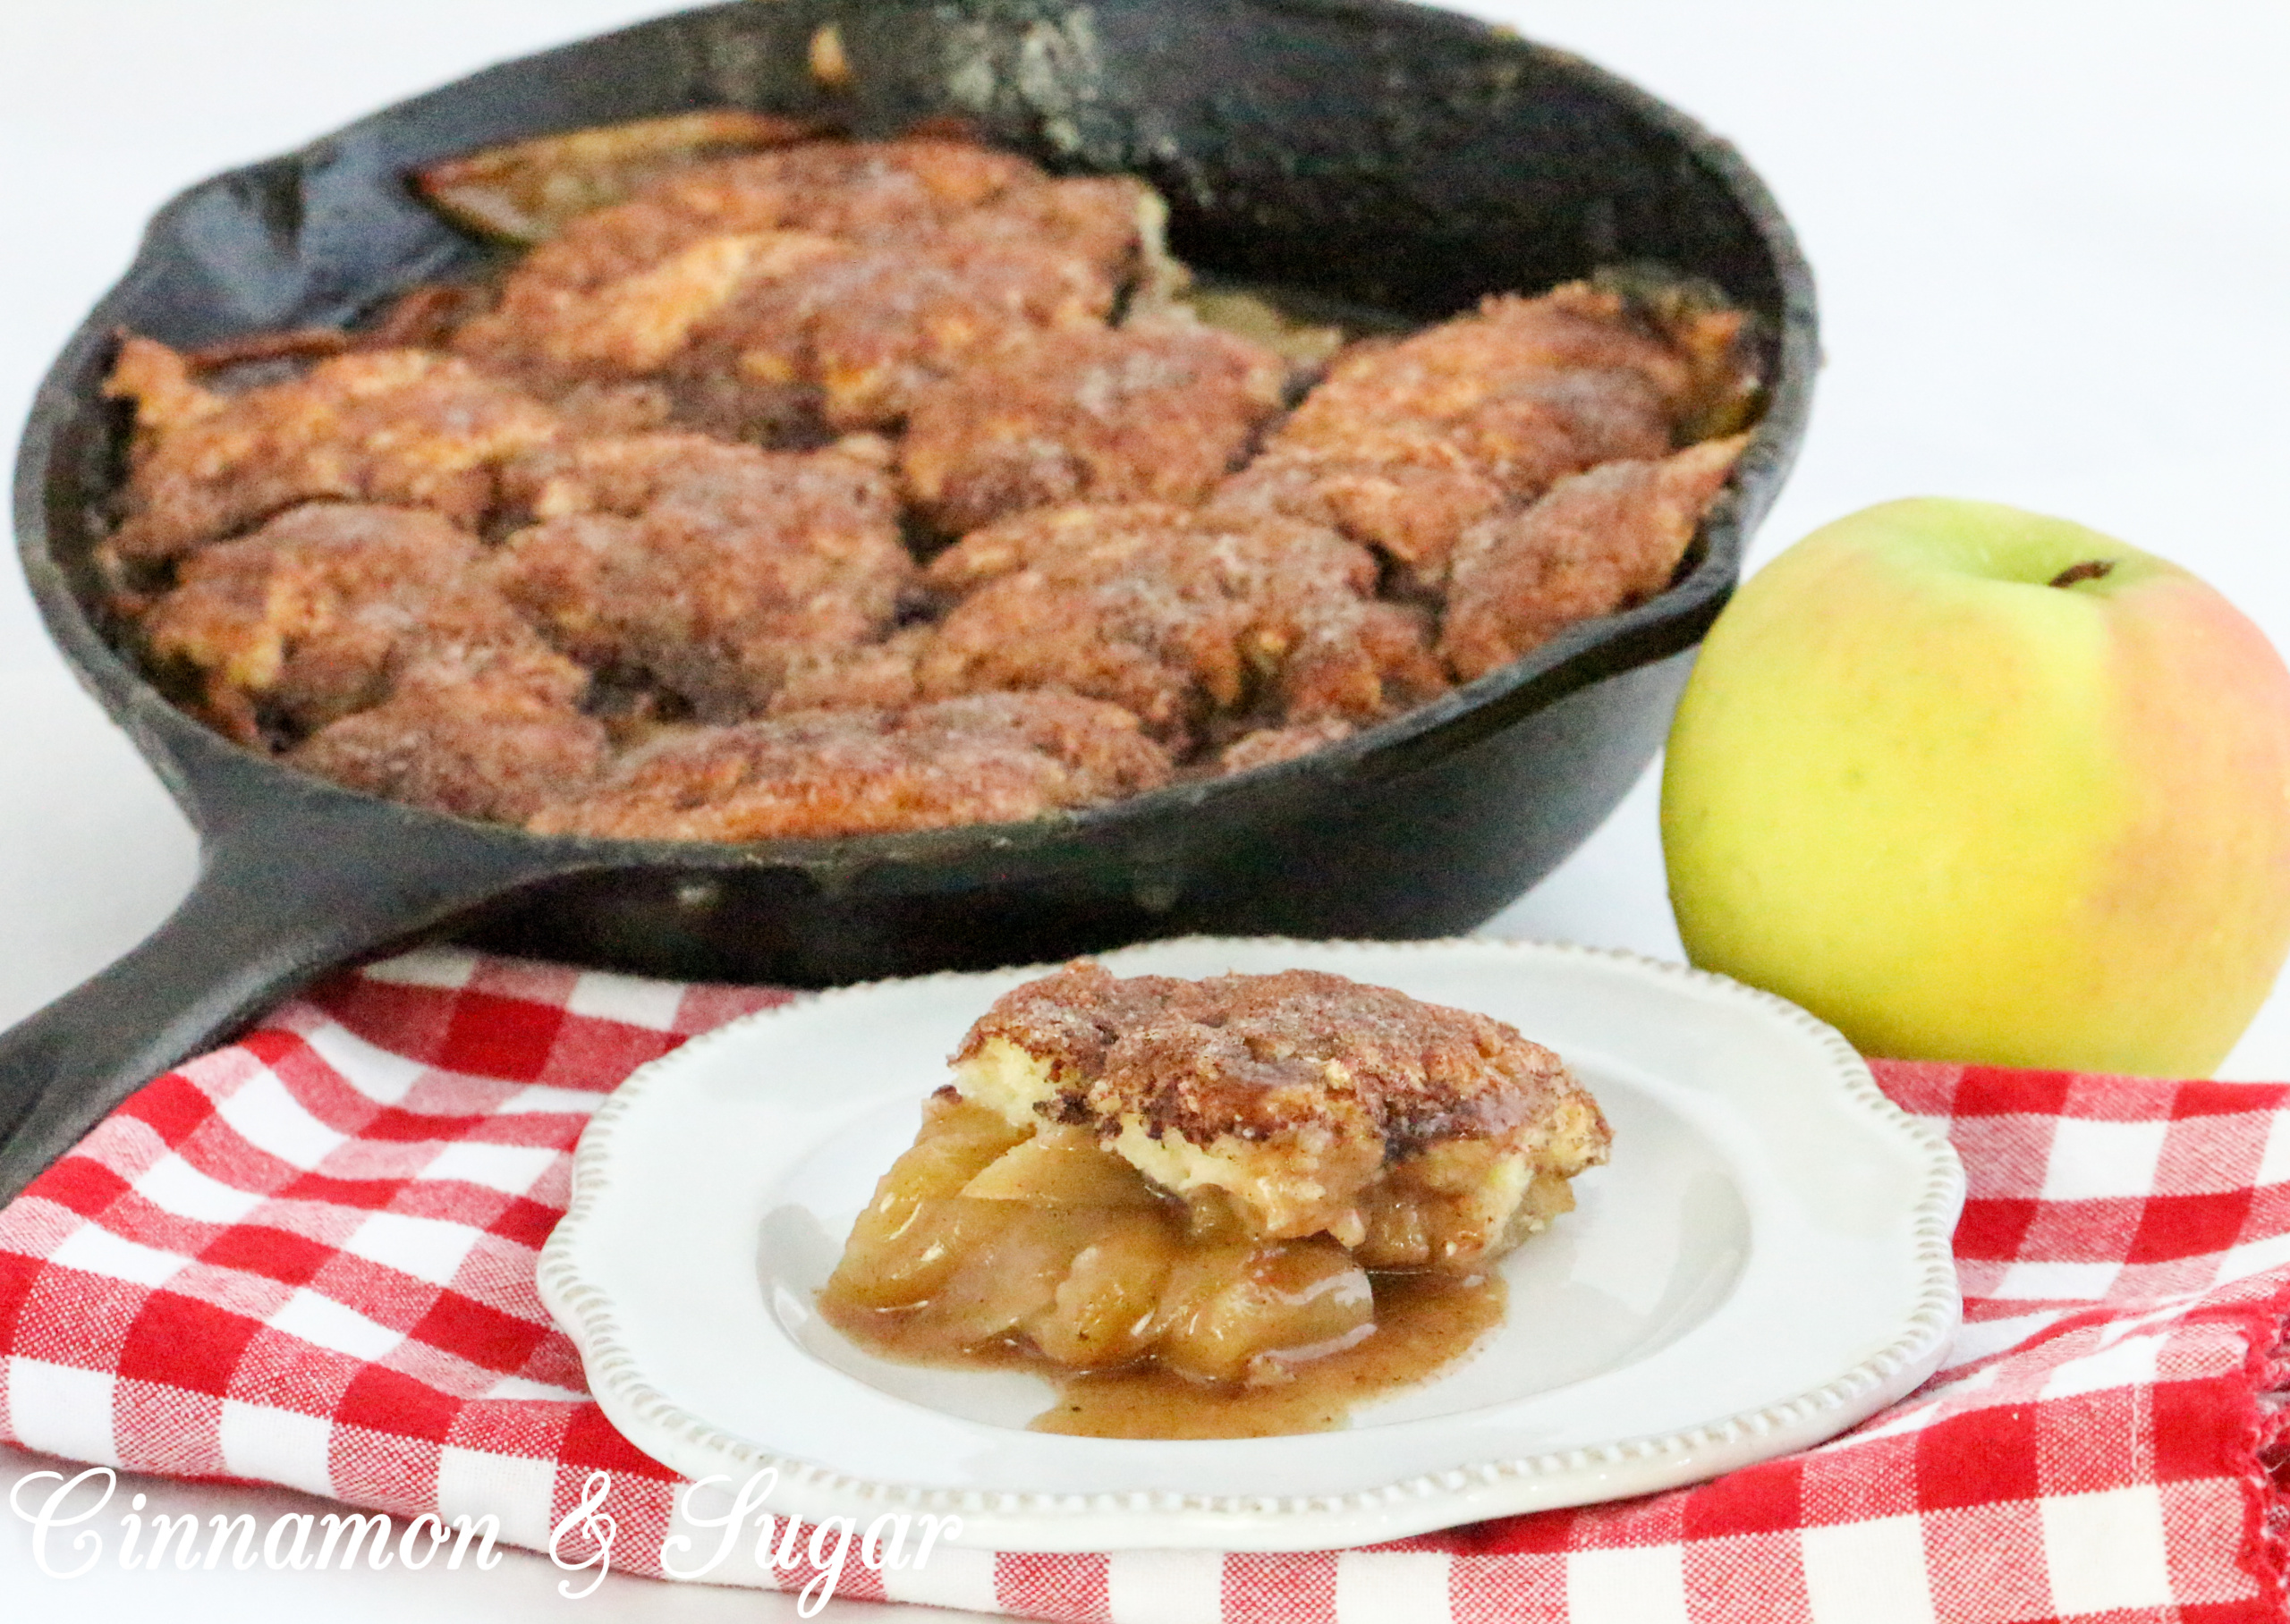 While rustic, Dutch Apple Cobbler in a Cast-Iron Skillet is scrumptiously delicious from the cinnamon-y tender apples to the buttery cinnamon sugar crunch coating the rich, biscuit-like topping. Recipe shared with permission granted by Cheryl Hollon, author of STILL KNIFE PAINTING.